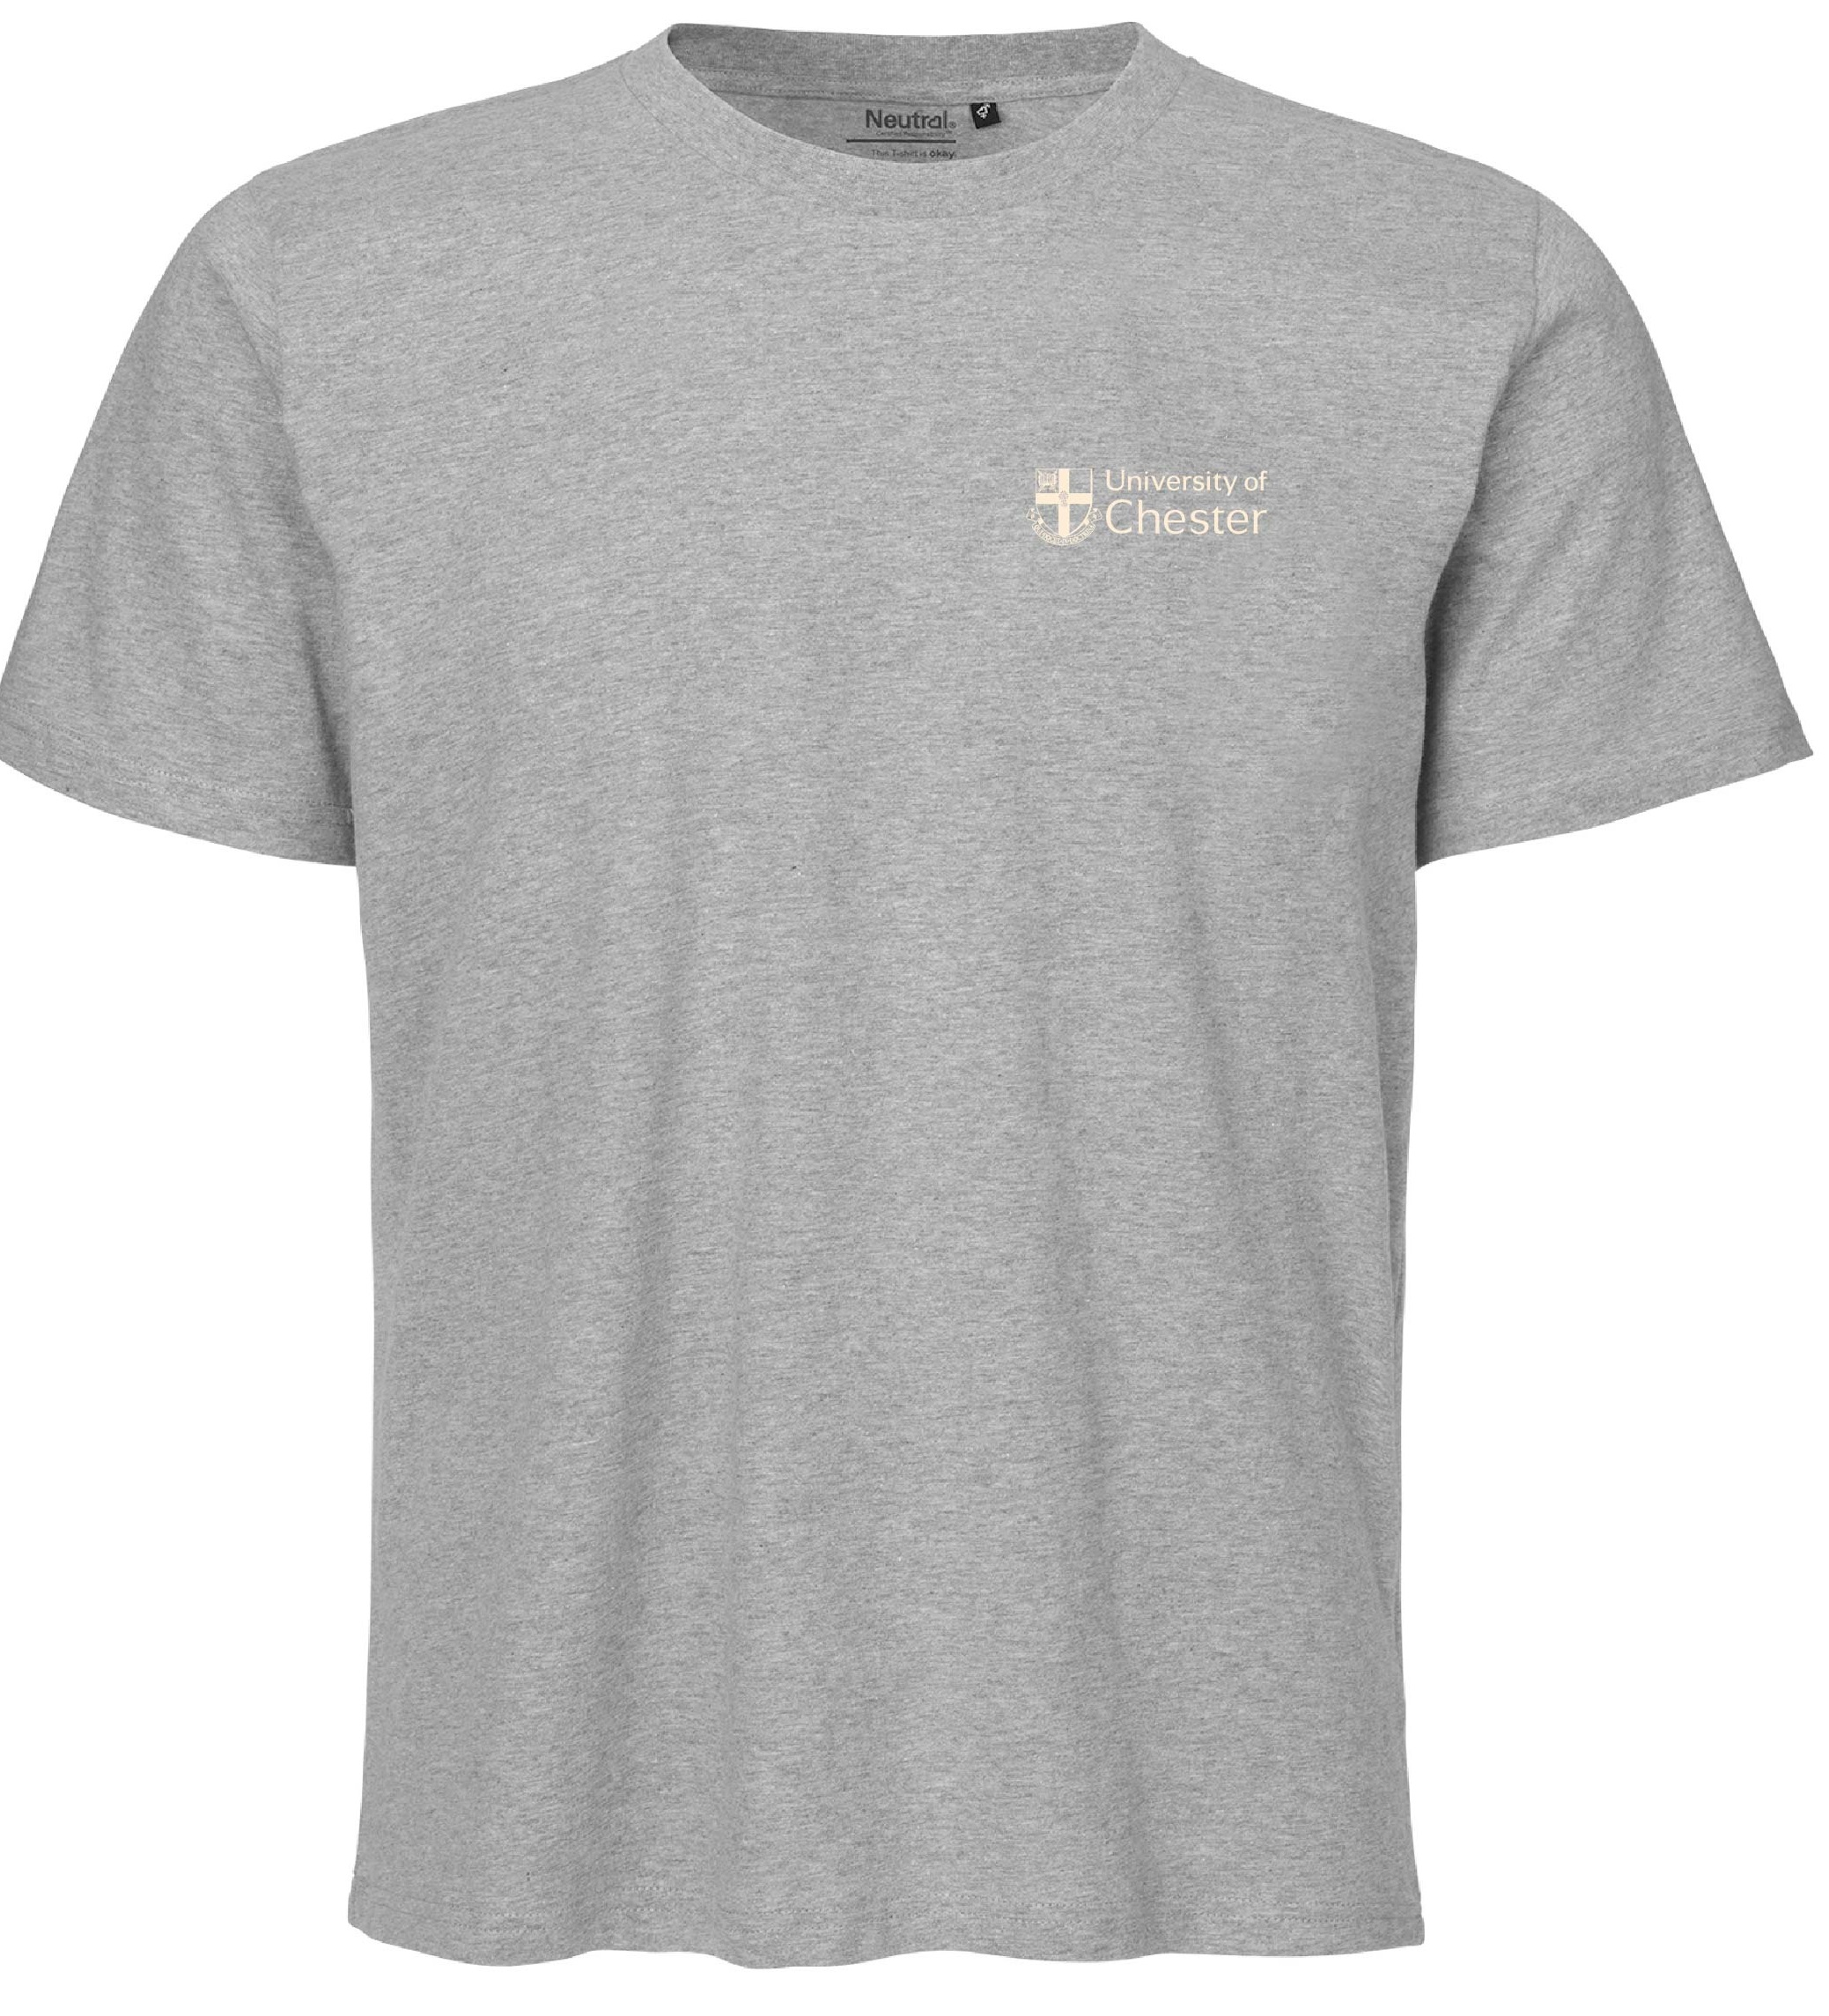 Neutral range - UoC T-Shirt - Grey - XL